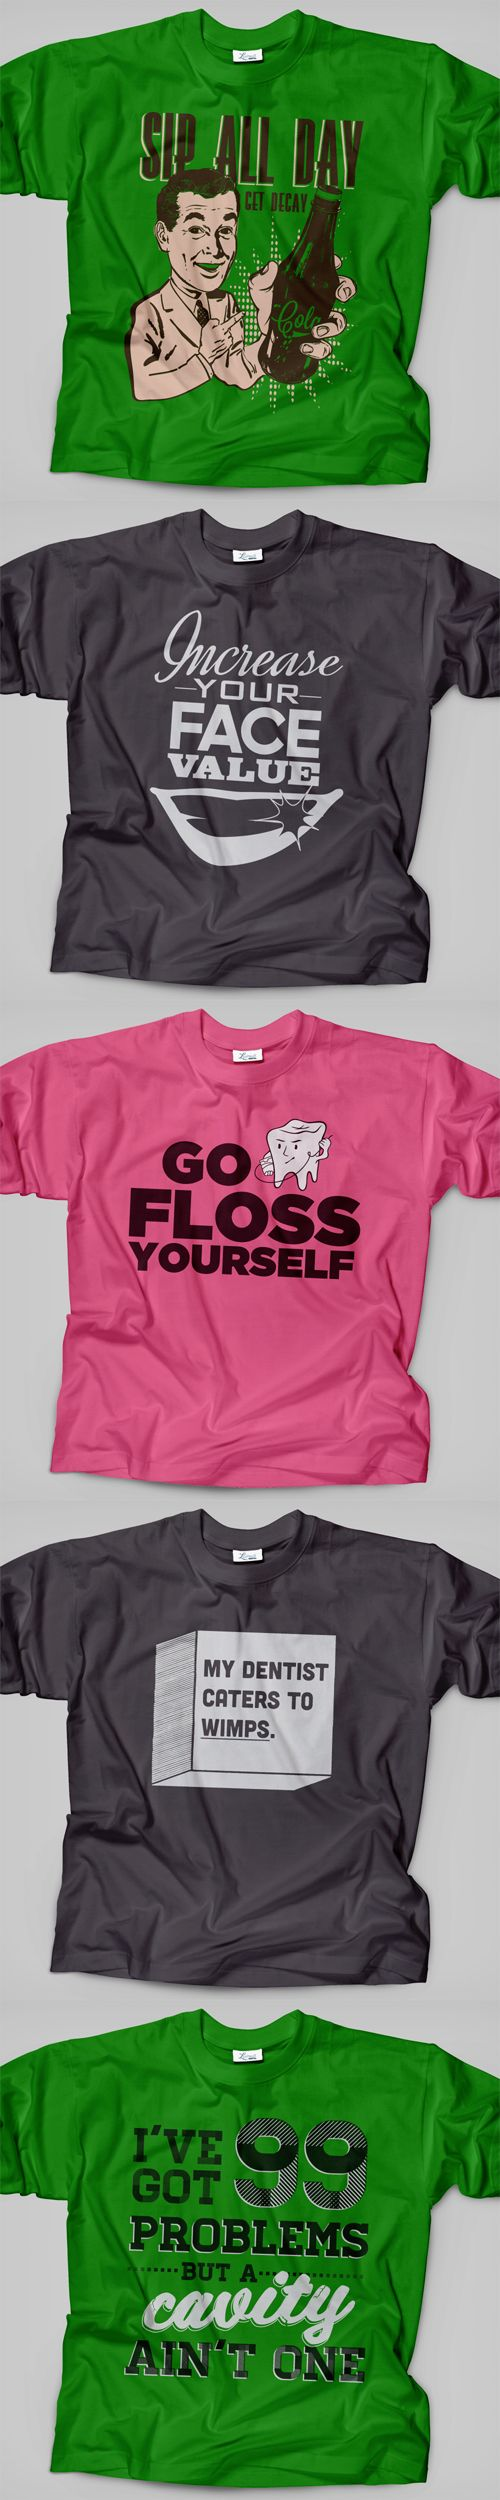 "it is ridiculous how much i want the ""go floss yourself"" and the ""99 problems. . ."" shirts! lol @Christina R. @Casey Willmon"